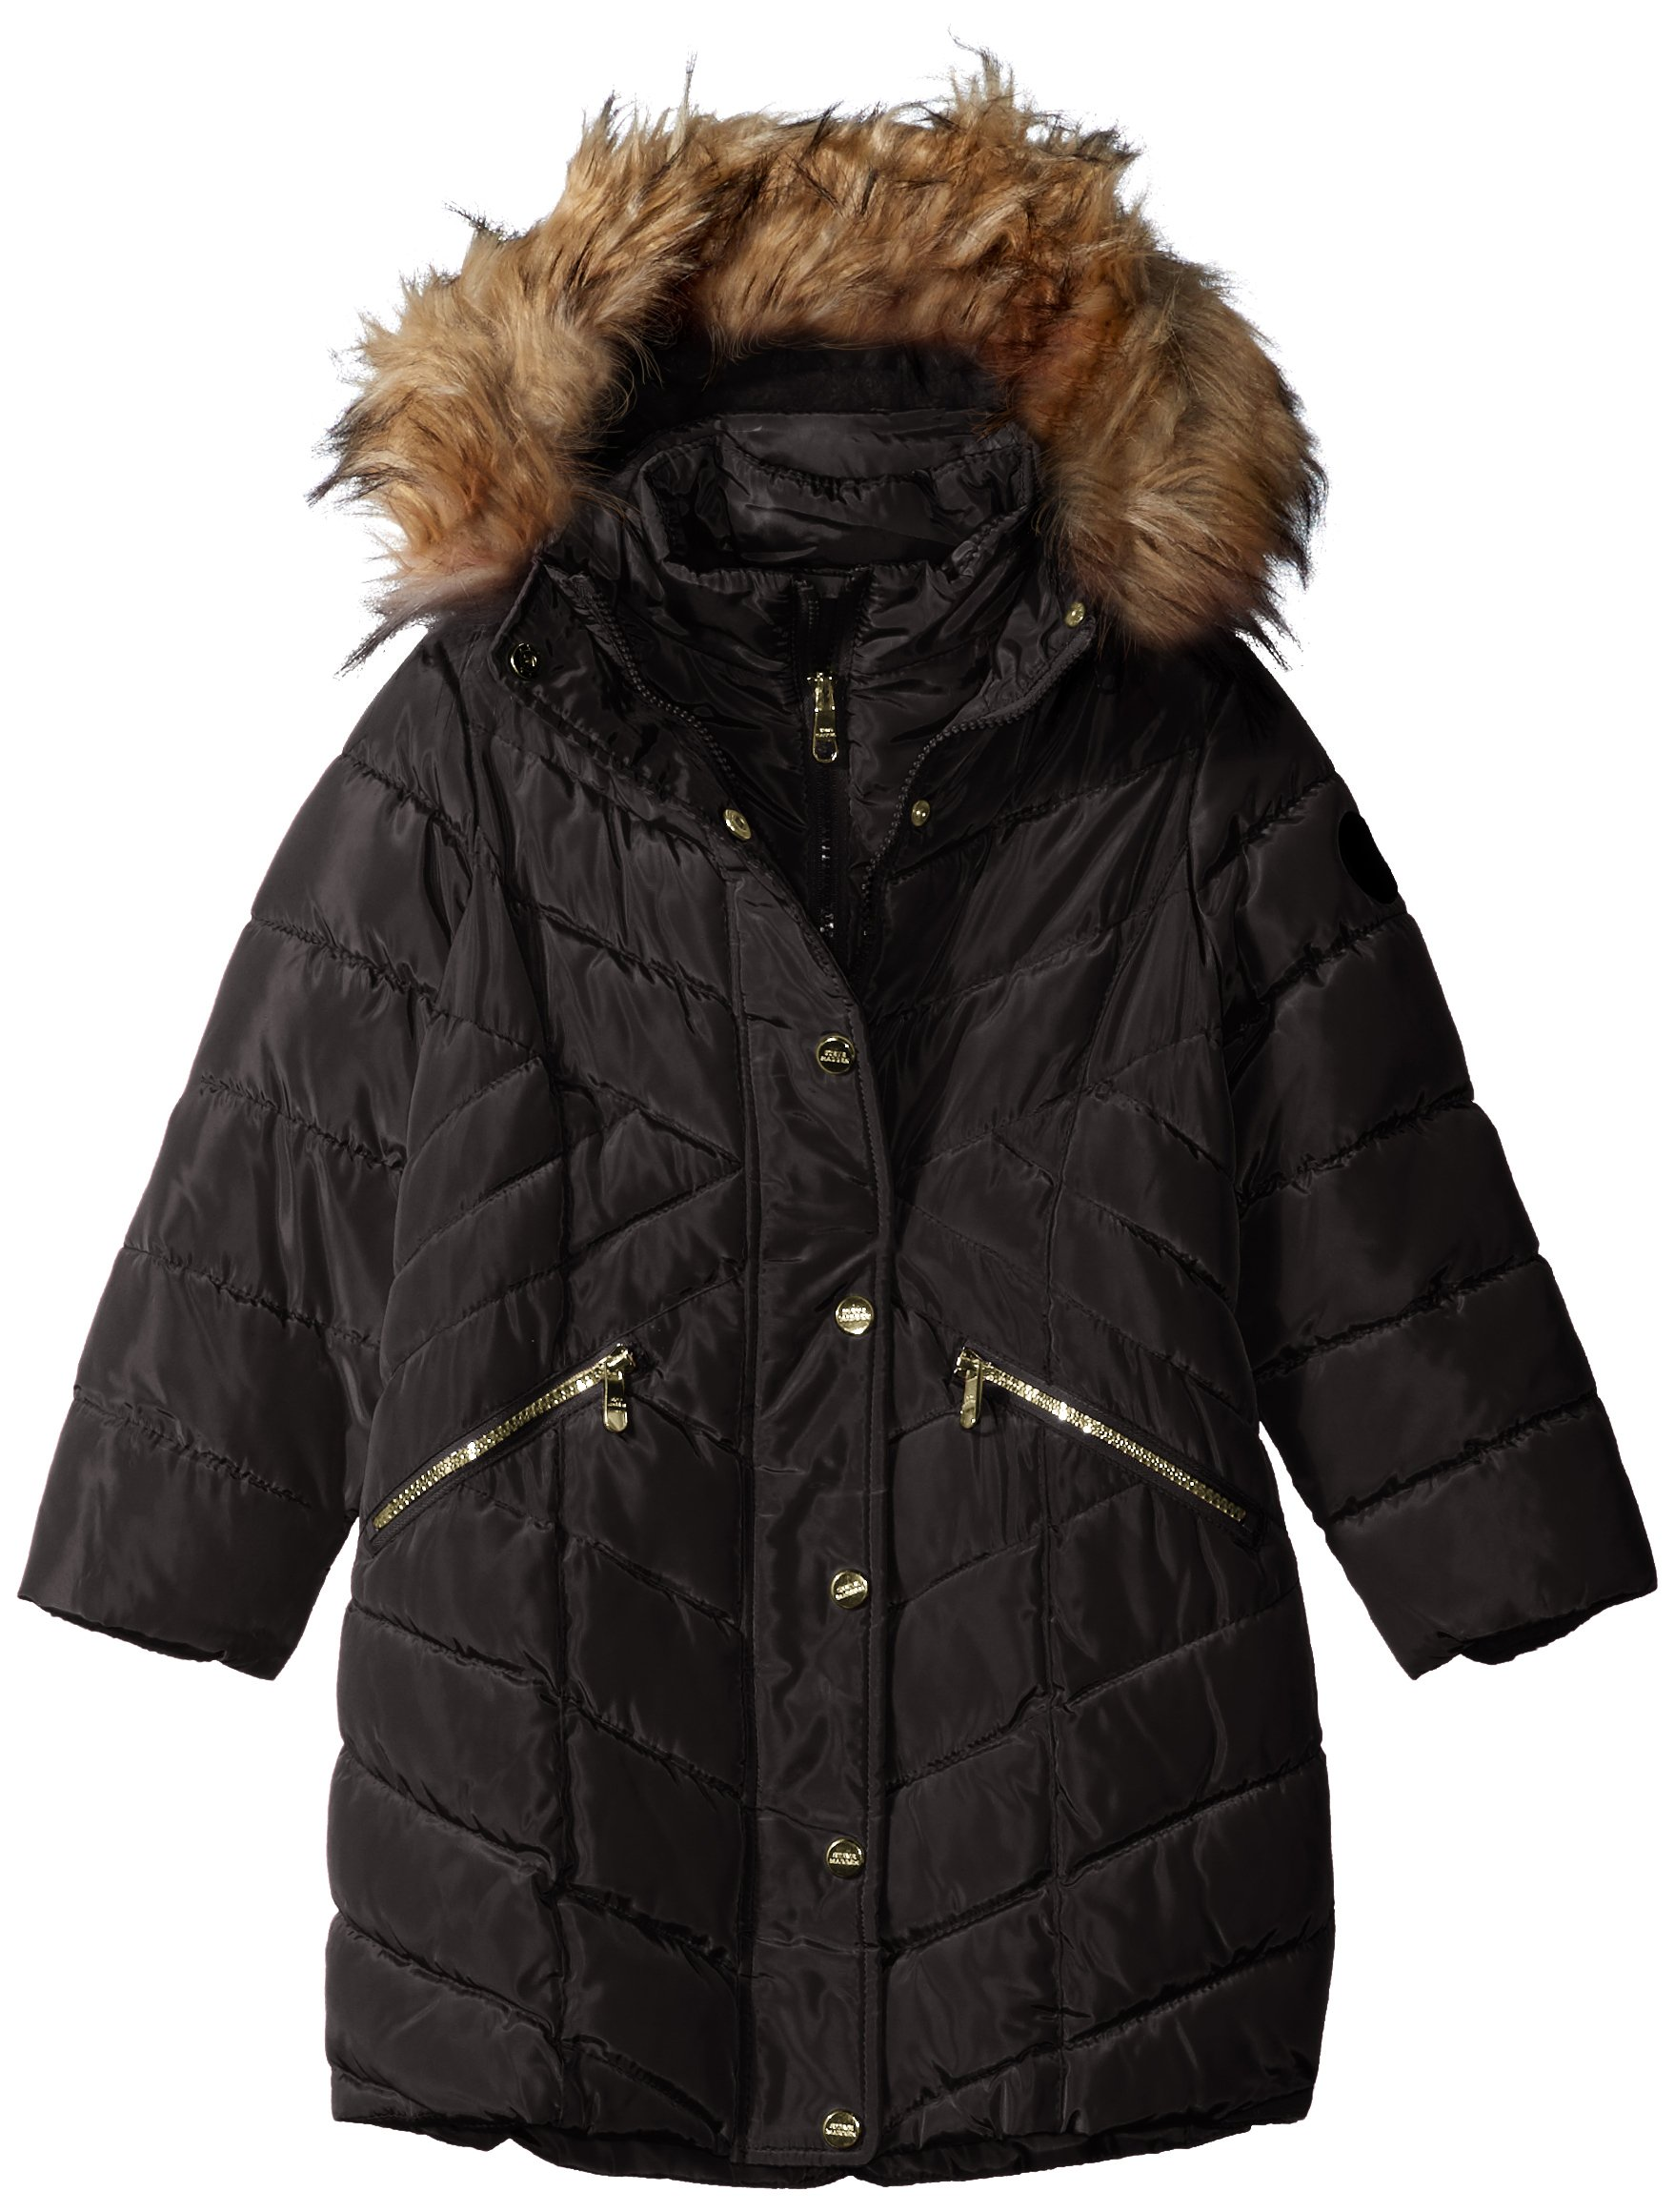 Steve Madden Big Girls' Bubble Jacket (More Styles Available), Long Bubble-A1043-Black, 7/8